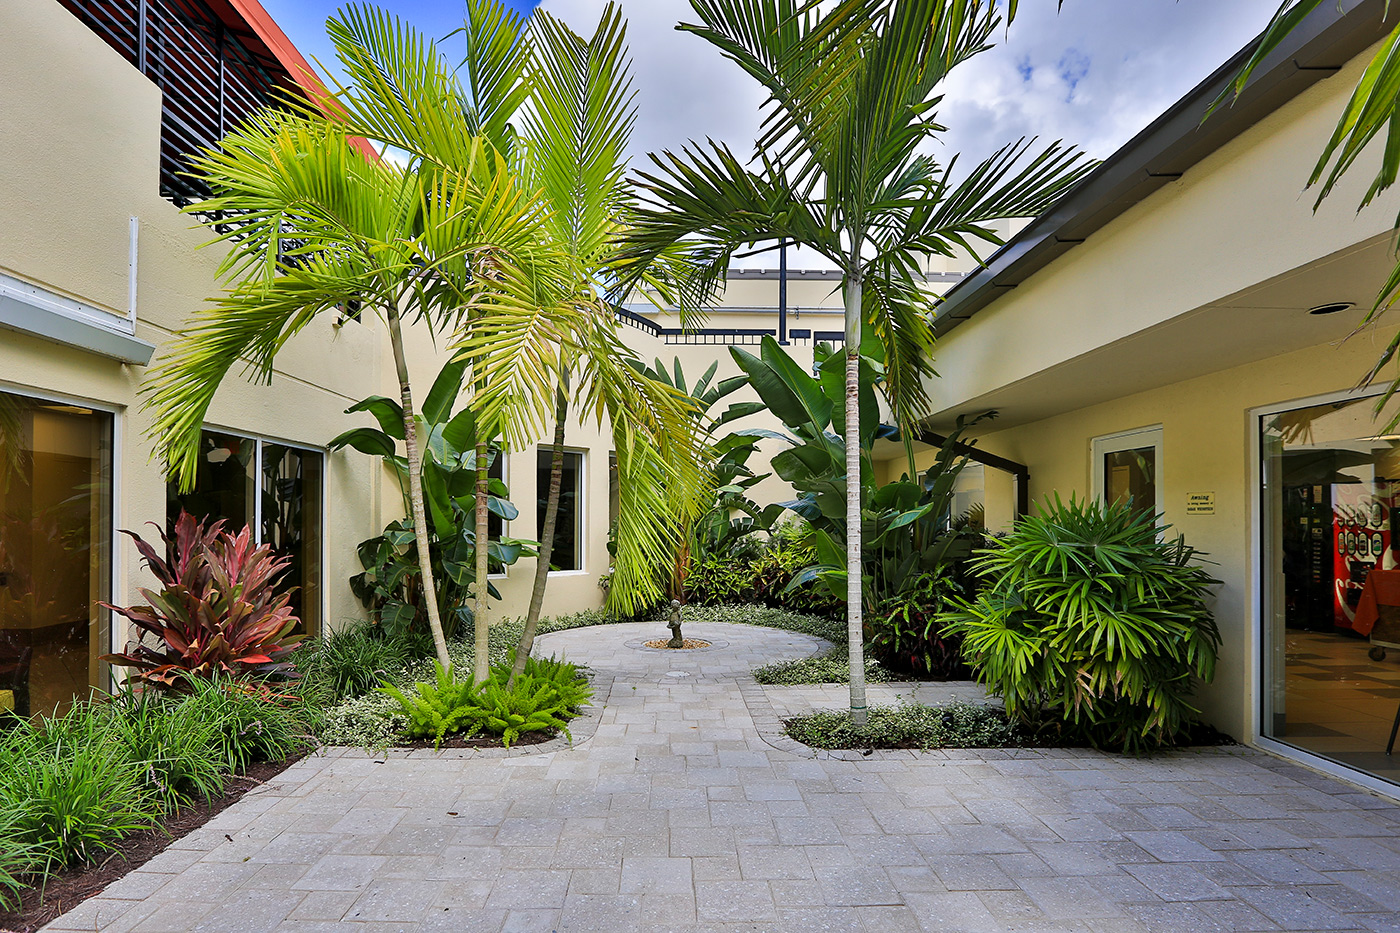 Morse Life: Outdoor Areas : West Palm Beach, FL  Renovation of outdoor areas which included the Walkway, Patio, and Courtyards. Work included:demolition, new landscaping, irrigation, brick pavers, textured walkways, stucco repairs, lighting,and painting